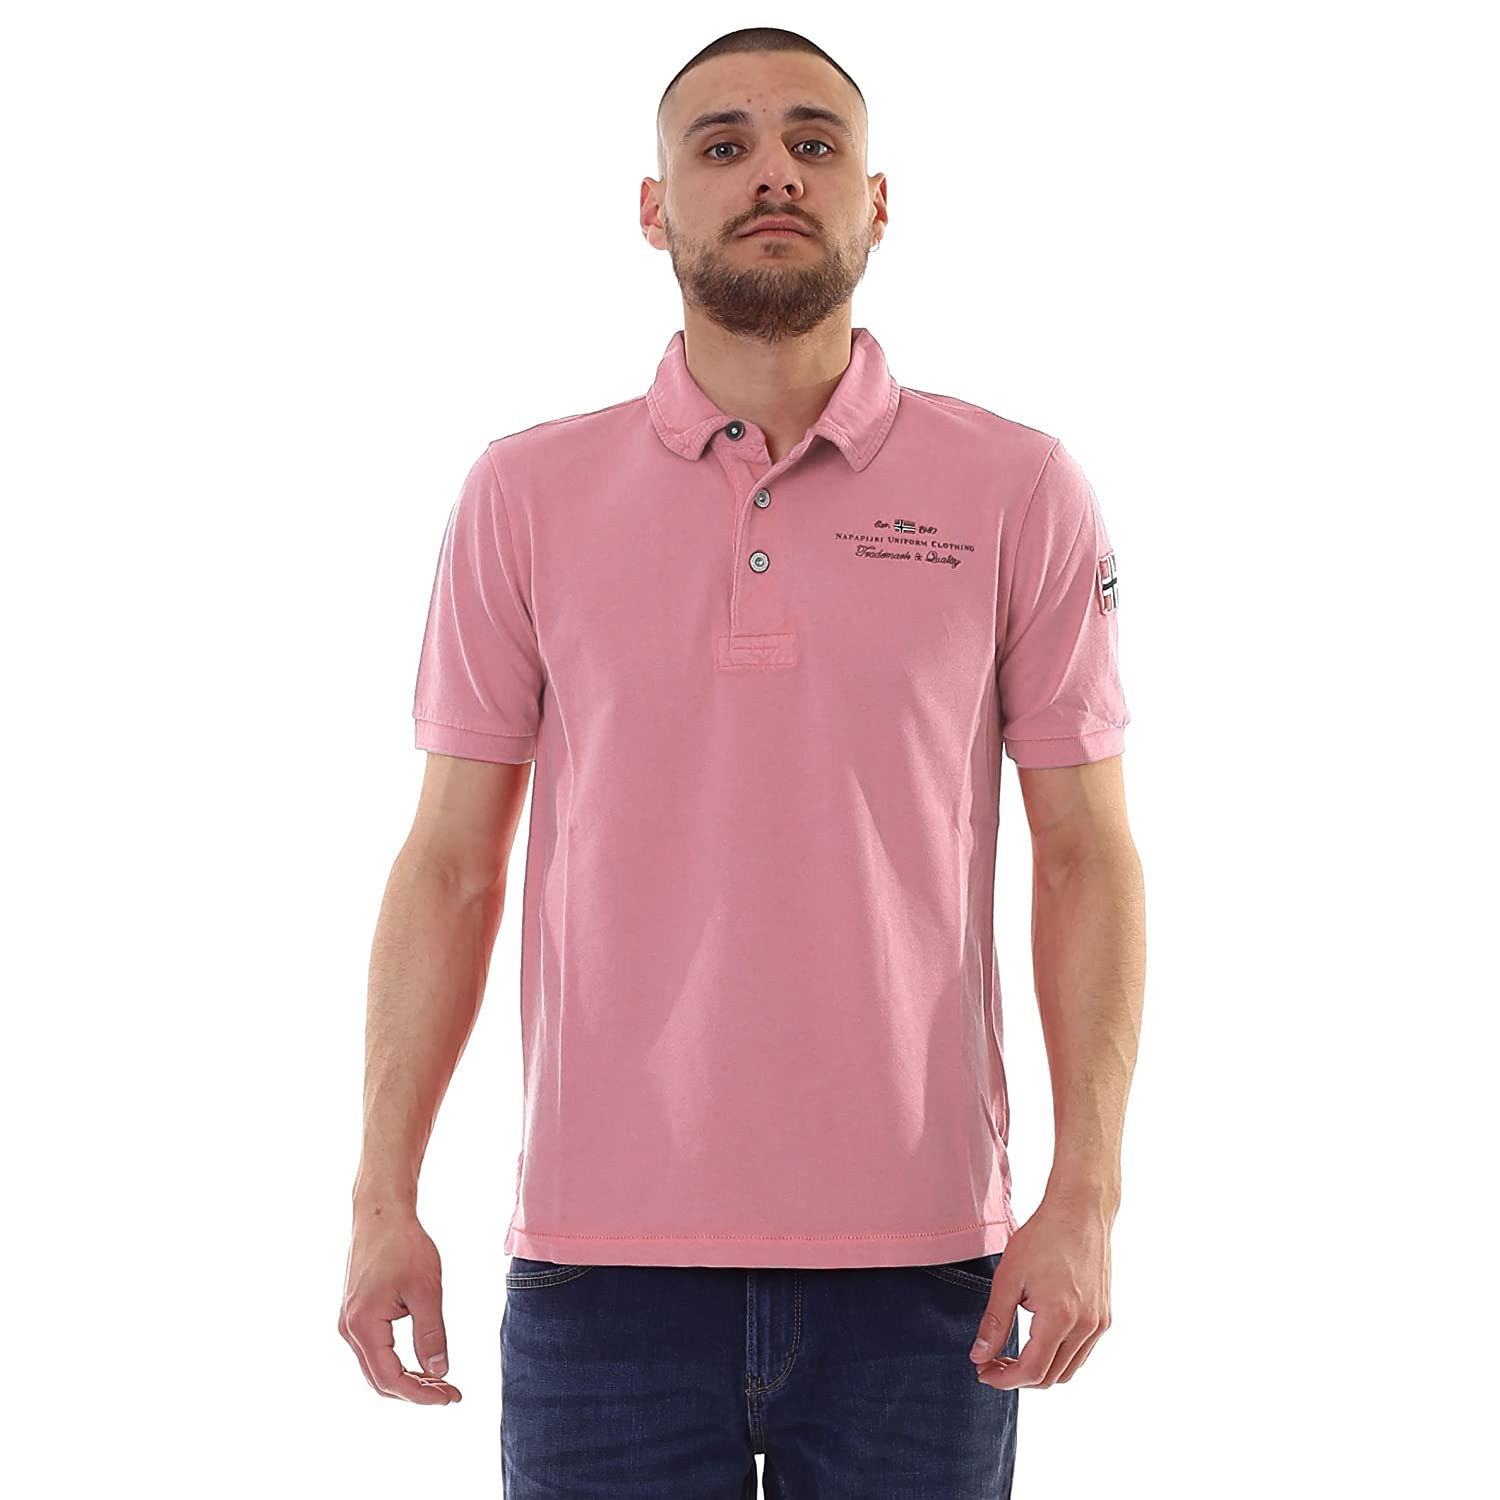 Napapijri ELBAS STRETCH DUSTY ROSE Polo, Rosa: Amazon.es: Deportes ...